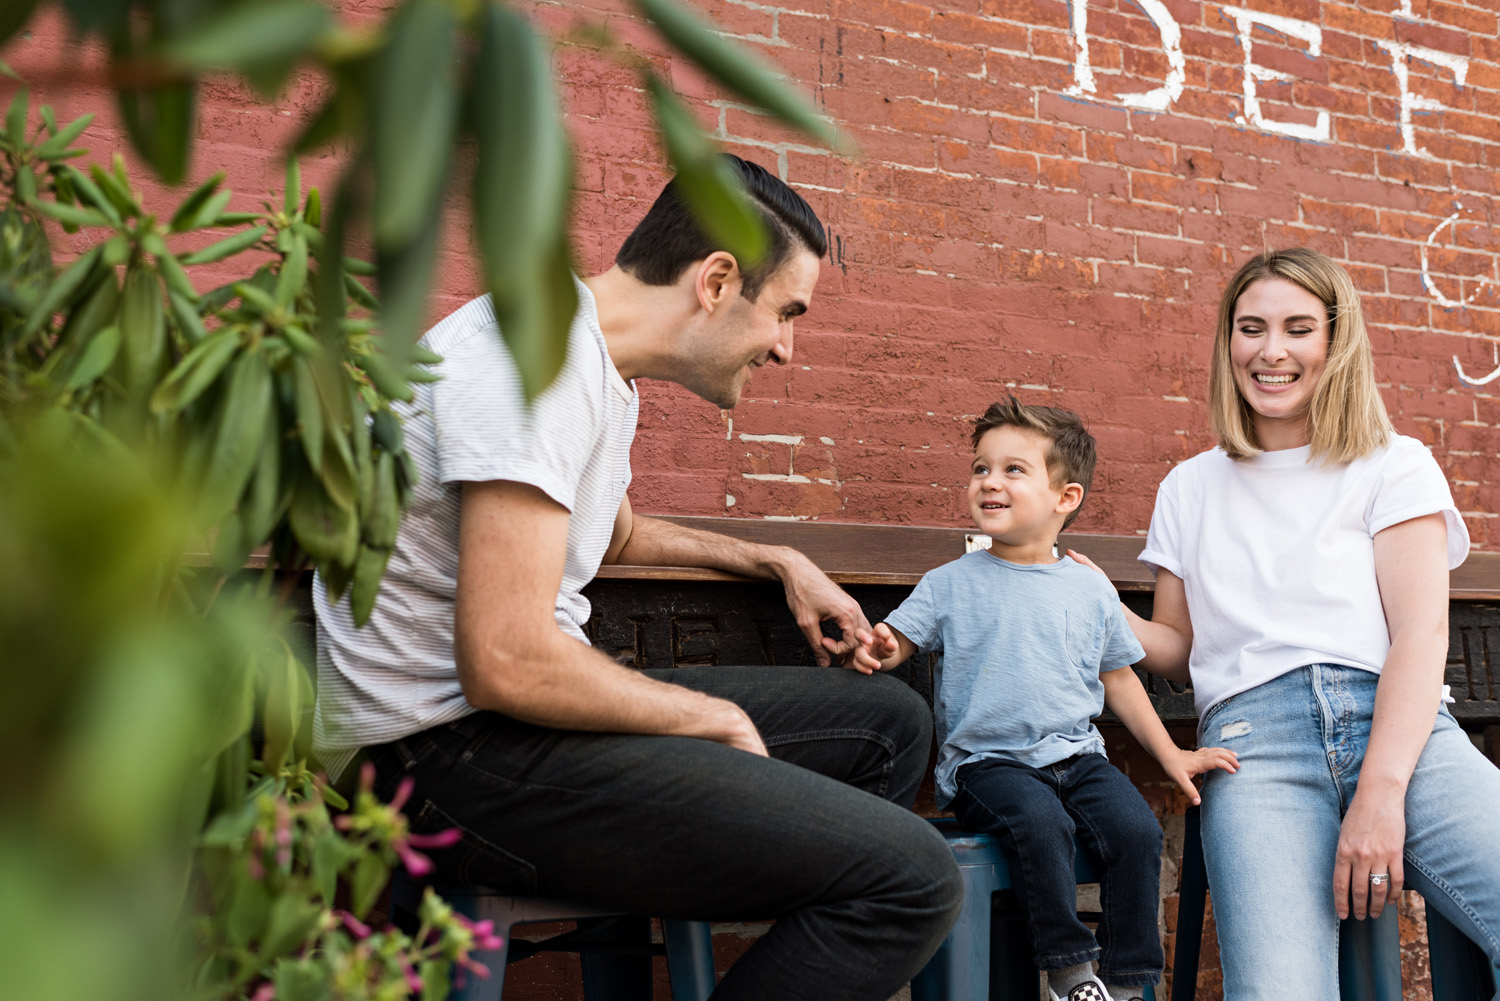 Red Hook Brooklyn Family Photographer_20190811_003.jpg